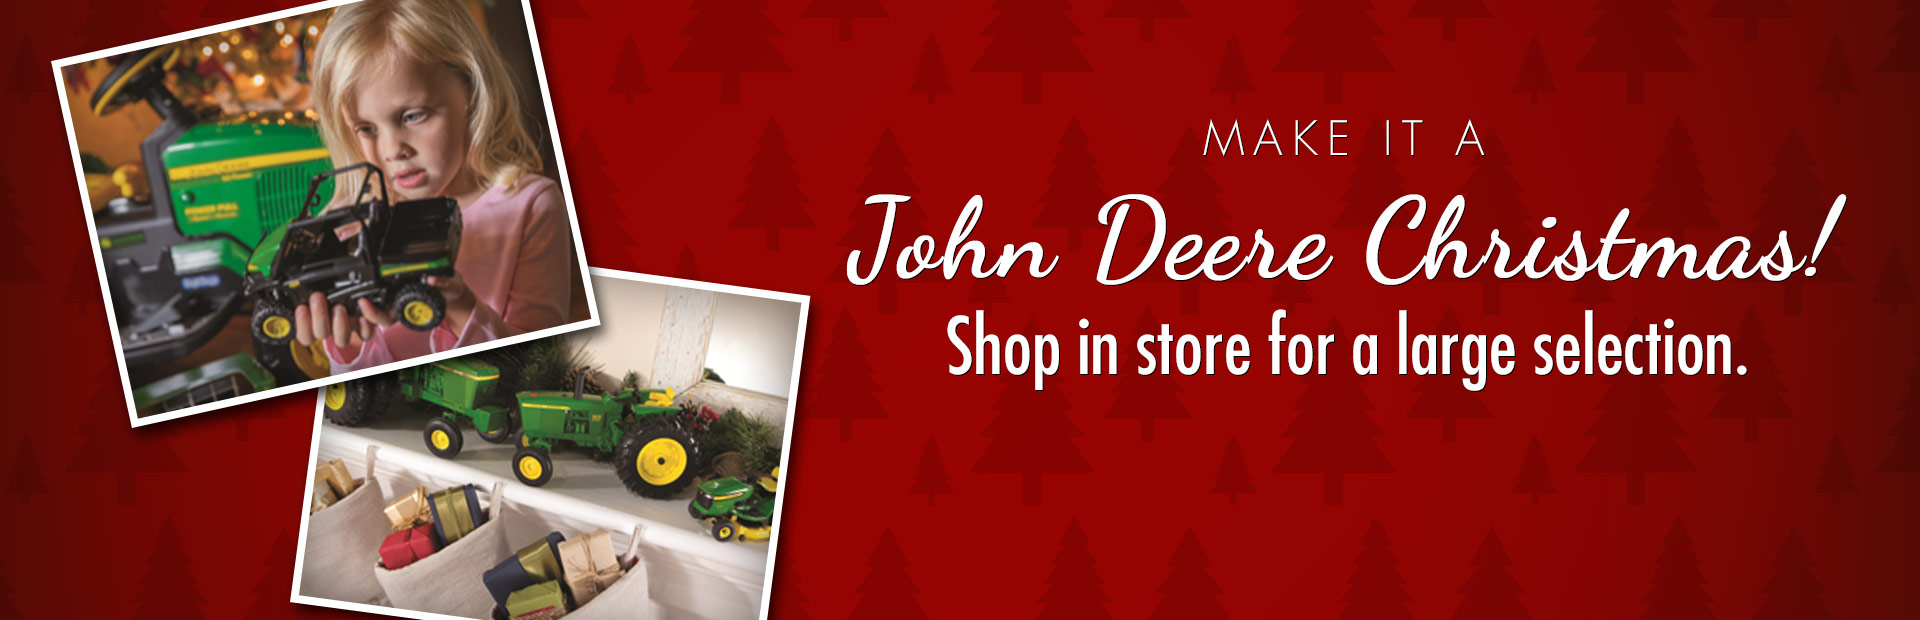 Make it a John Deere Christmas! Shop in store for a large selection of John Deere equipment!